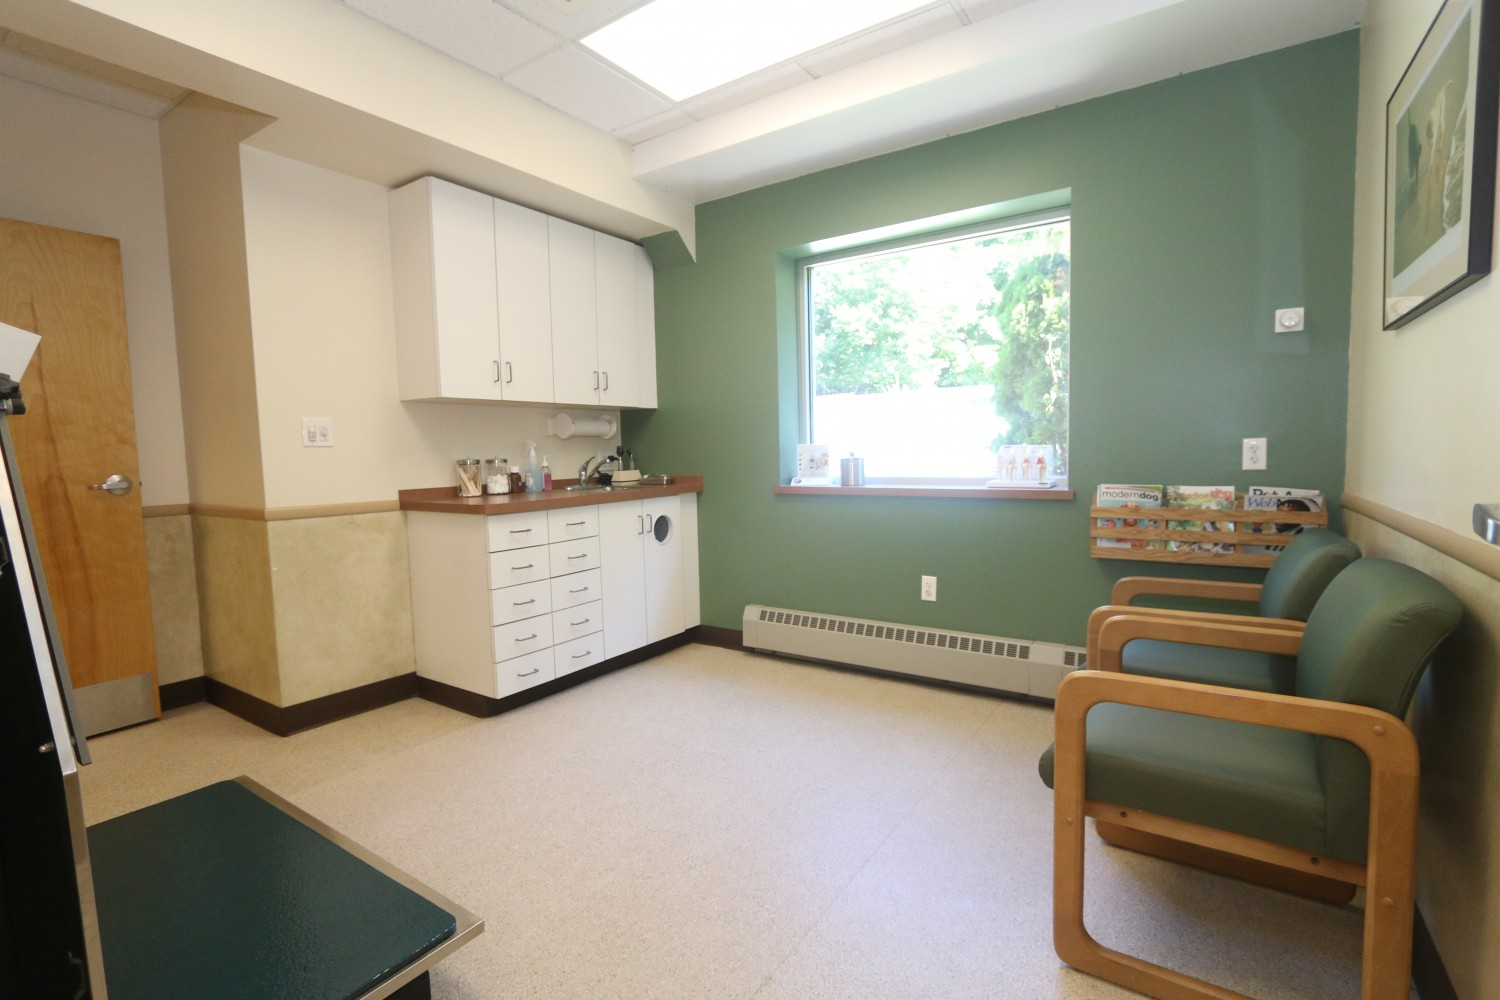 Litchfield Veterinary Hospital - Litchfield, CT - Exam Room